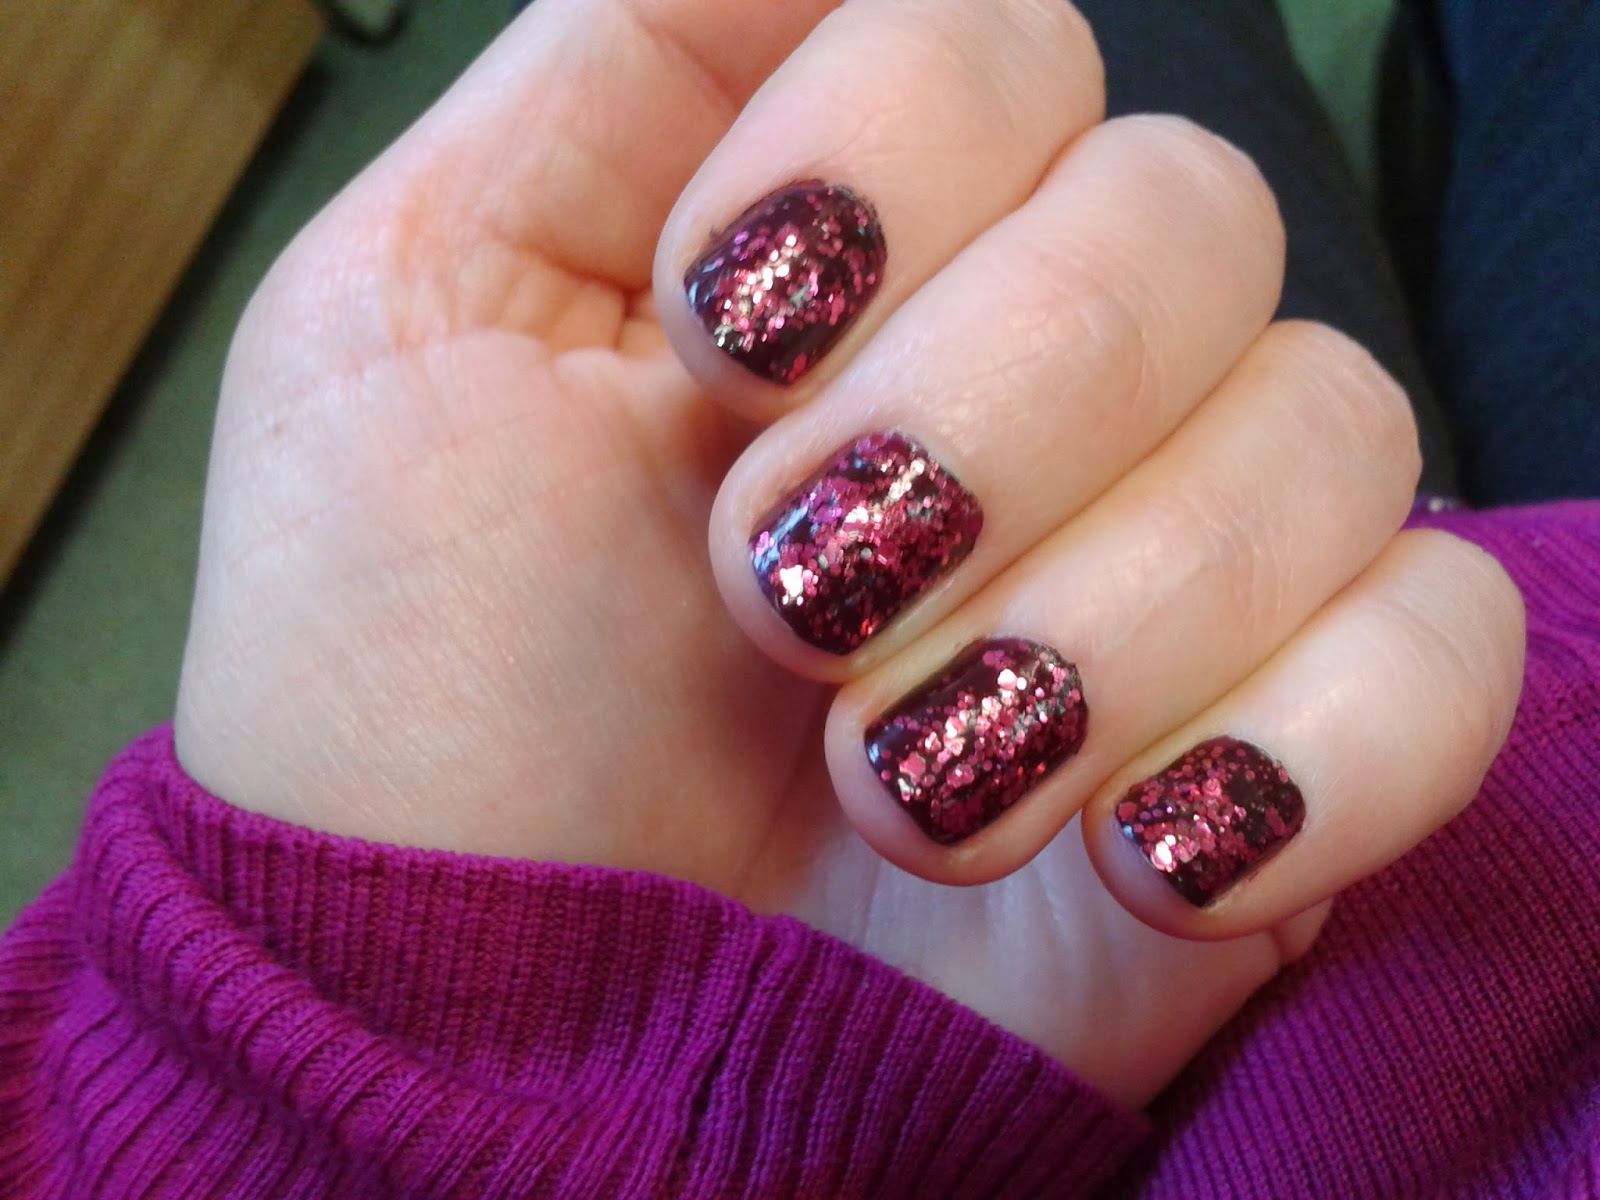 Dark burgandy and fuchsia glitter nail polish